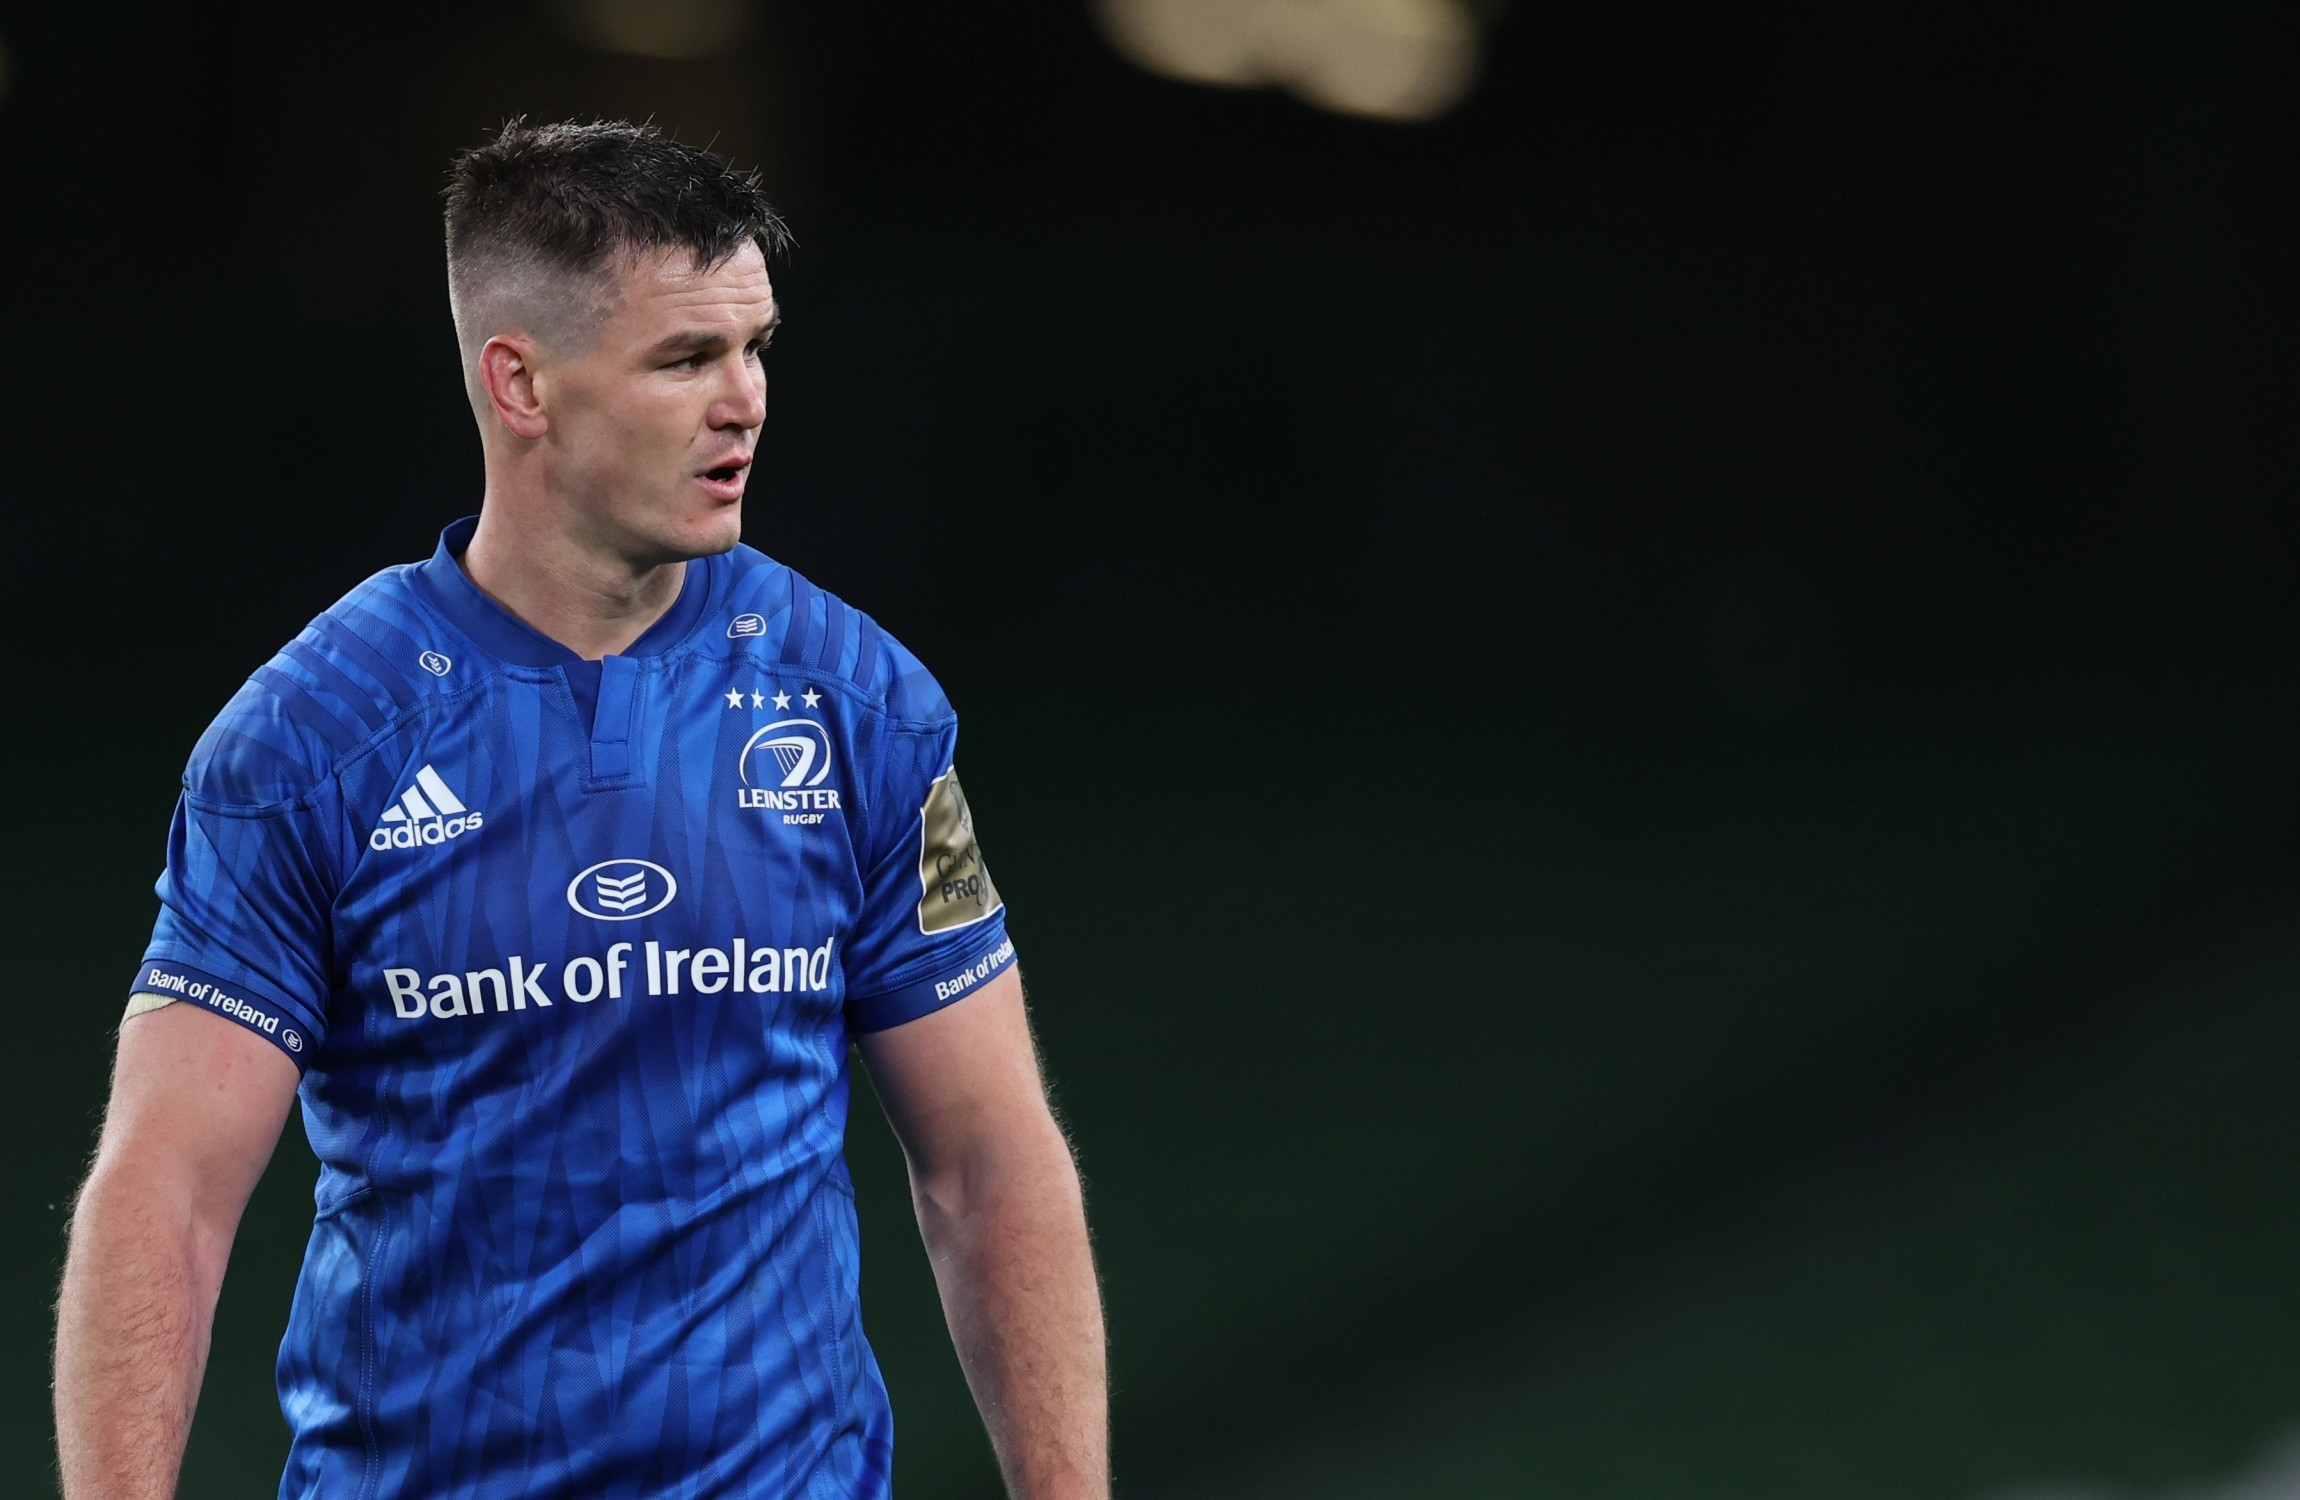 Leinster defend Pro14 title with 27-5 win over Ulster in final